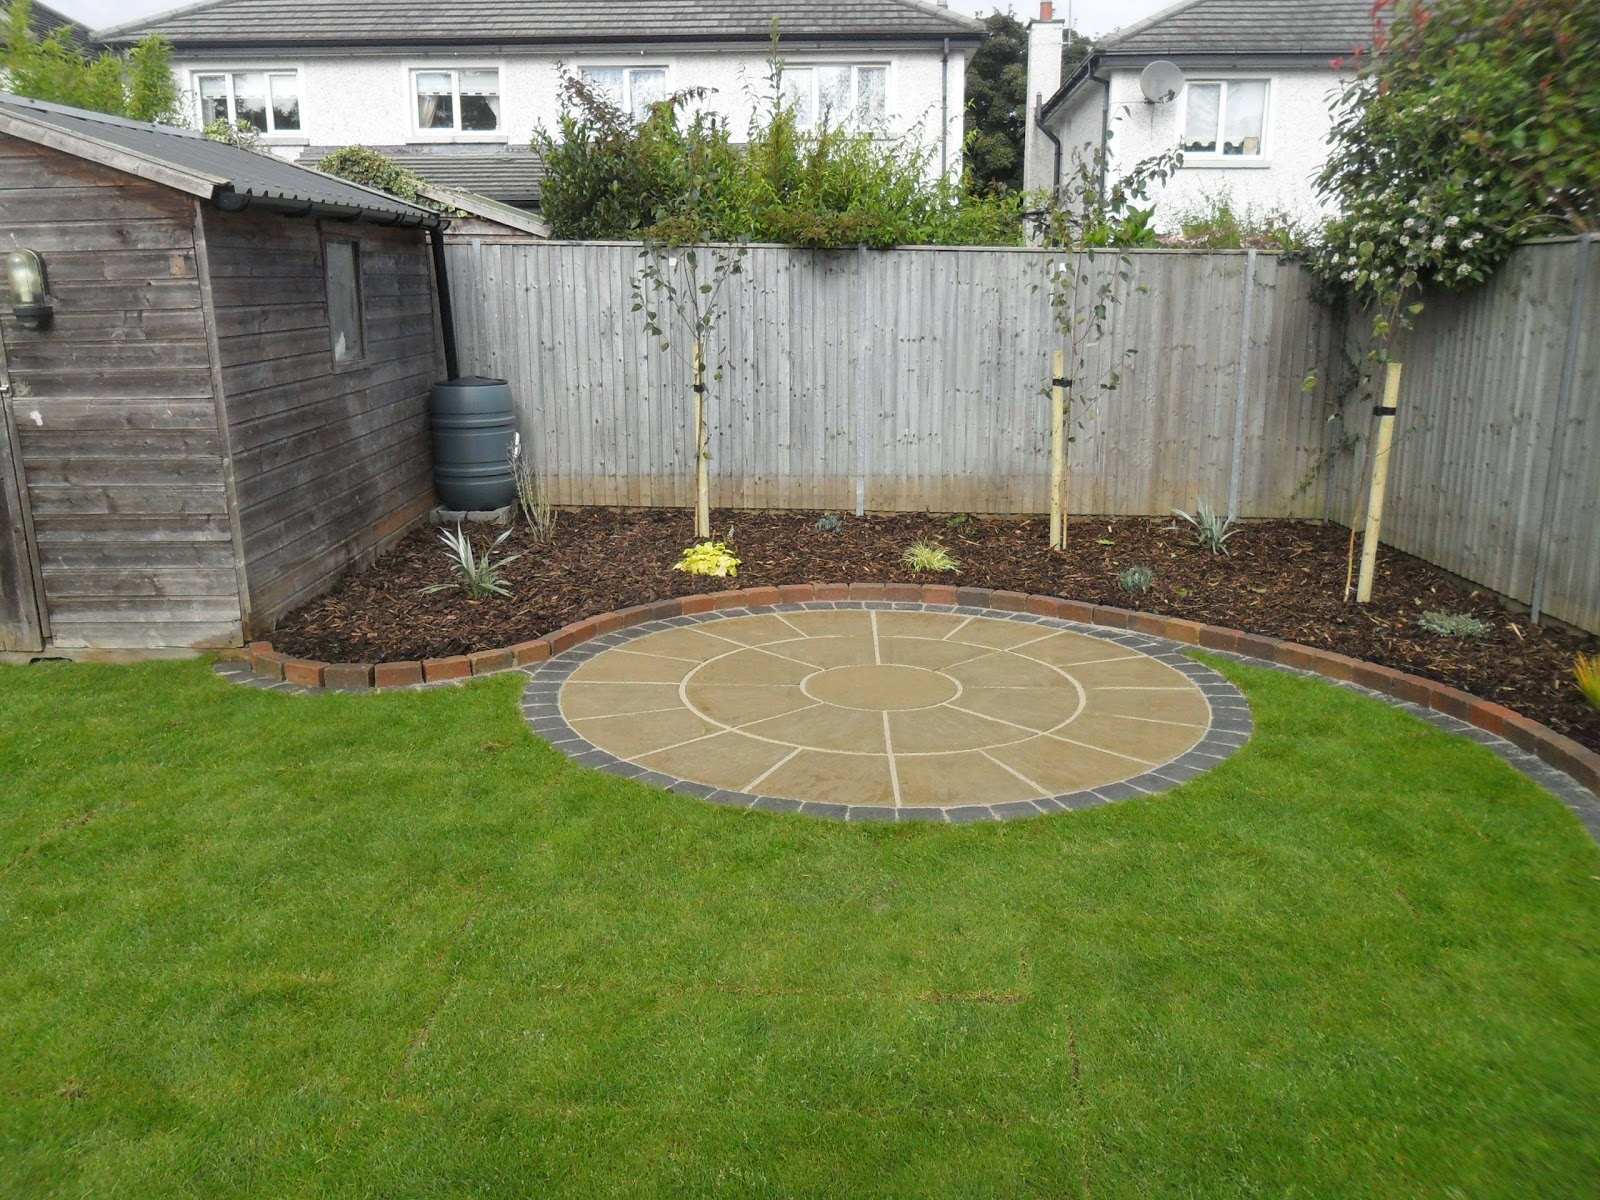 Greenart landscapes garden design construction and for Circular garden designs